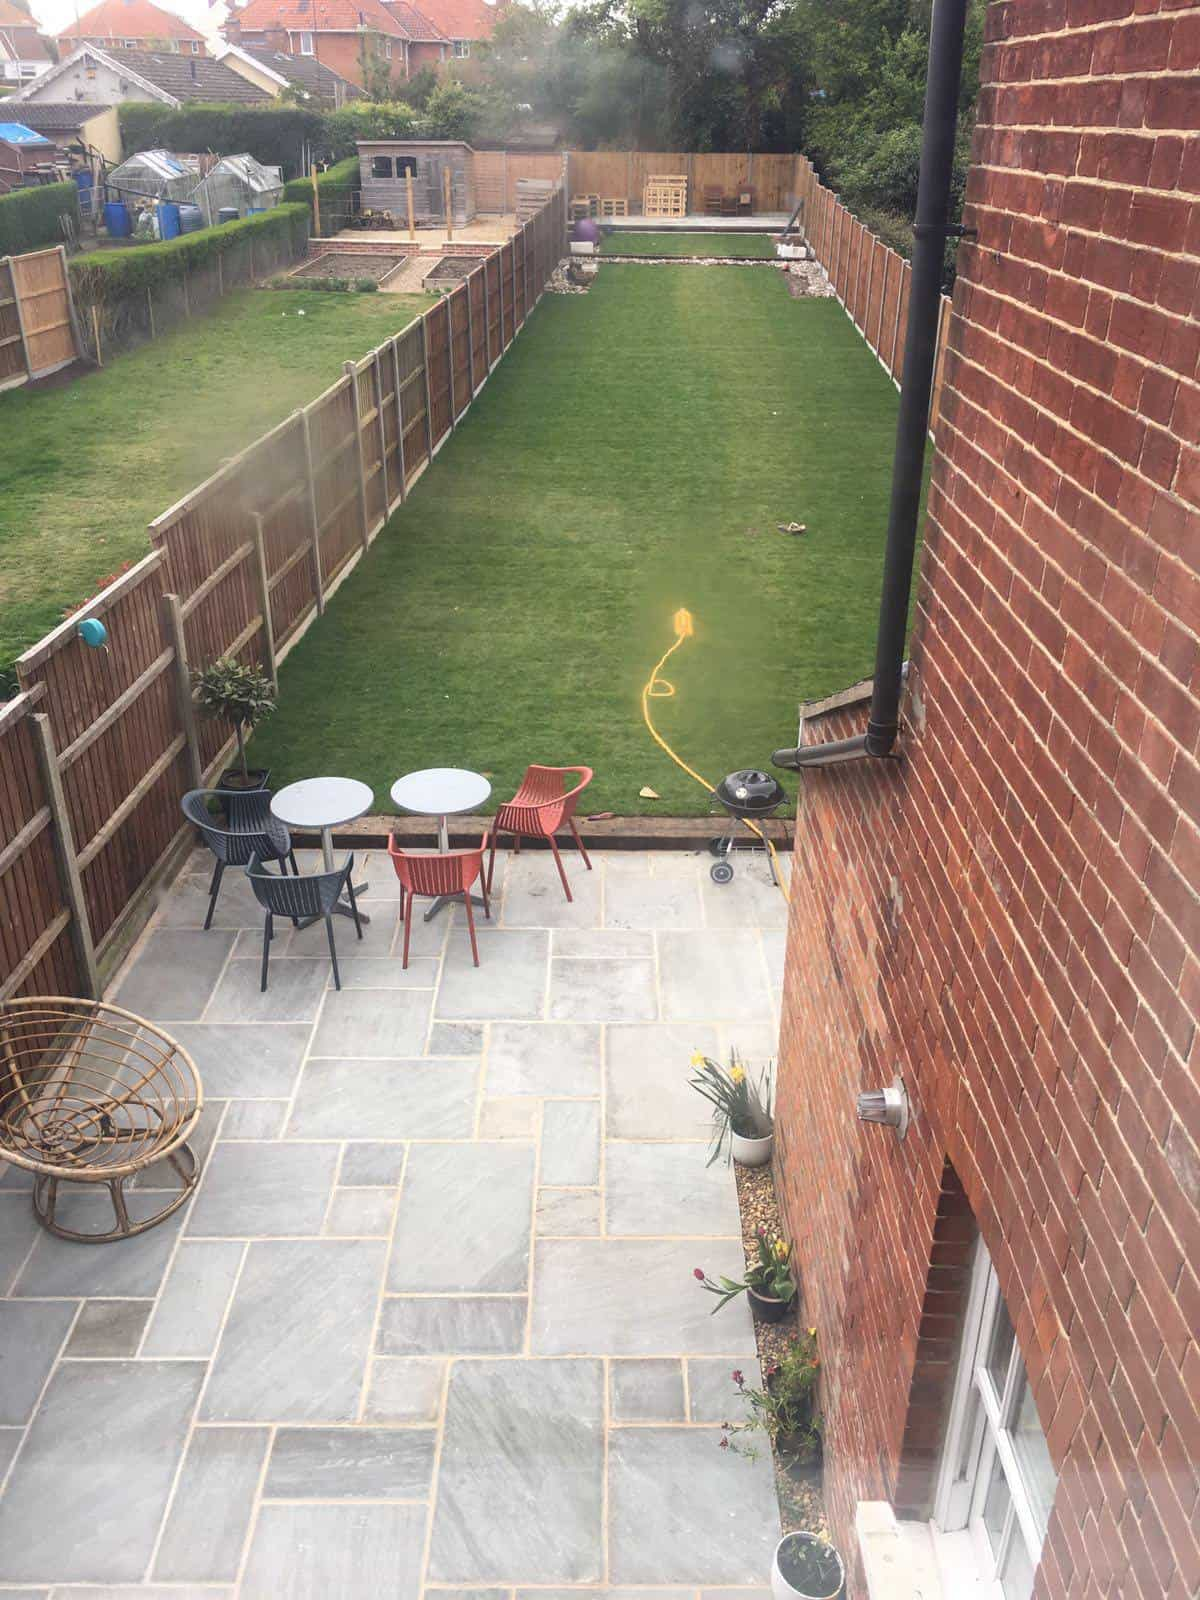 Completed job grey patio area and new turf loddon for Garden decking norwich